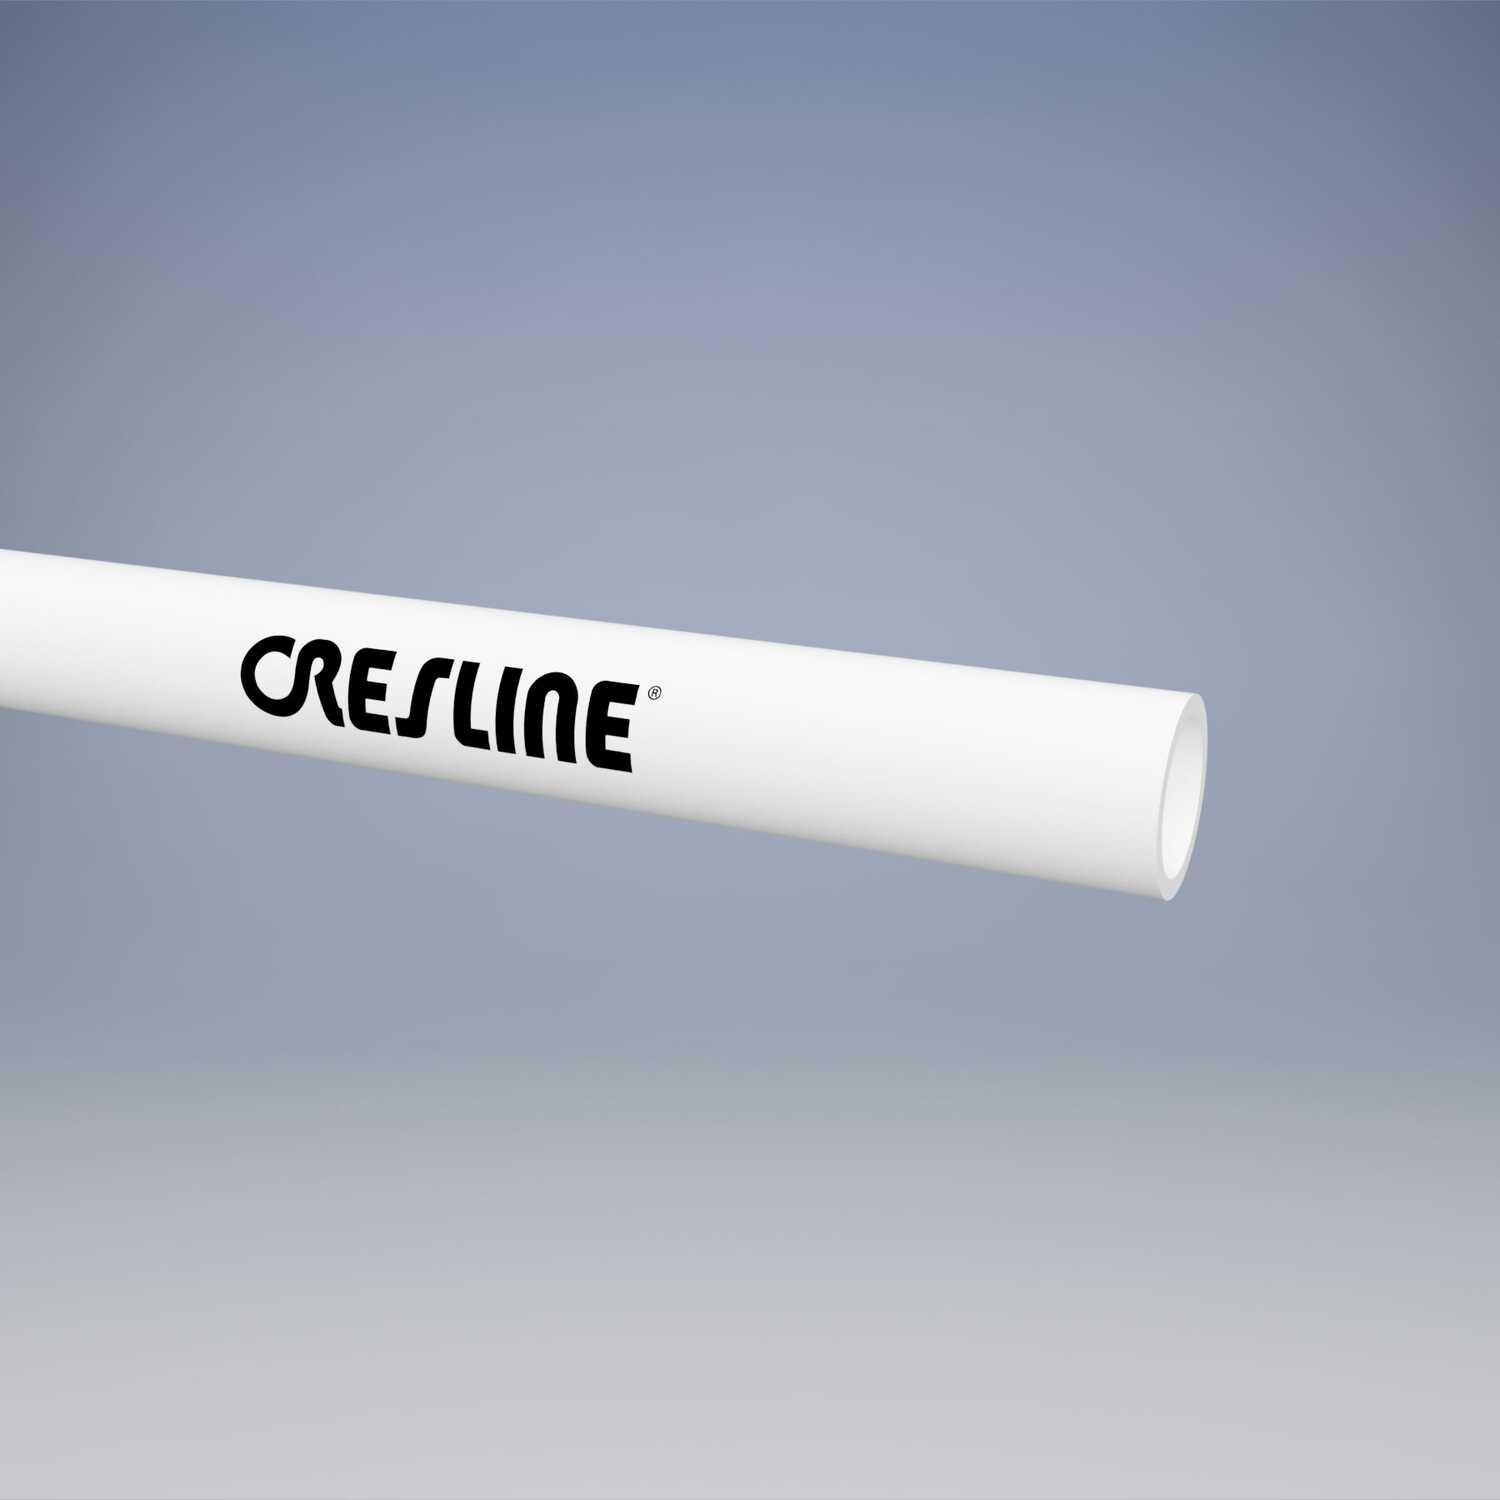 Cresline  PVC Pipe  1/2 in. Dia. x 10 ft. L Plain End  Schedule 40  600 psi